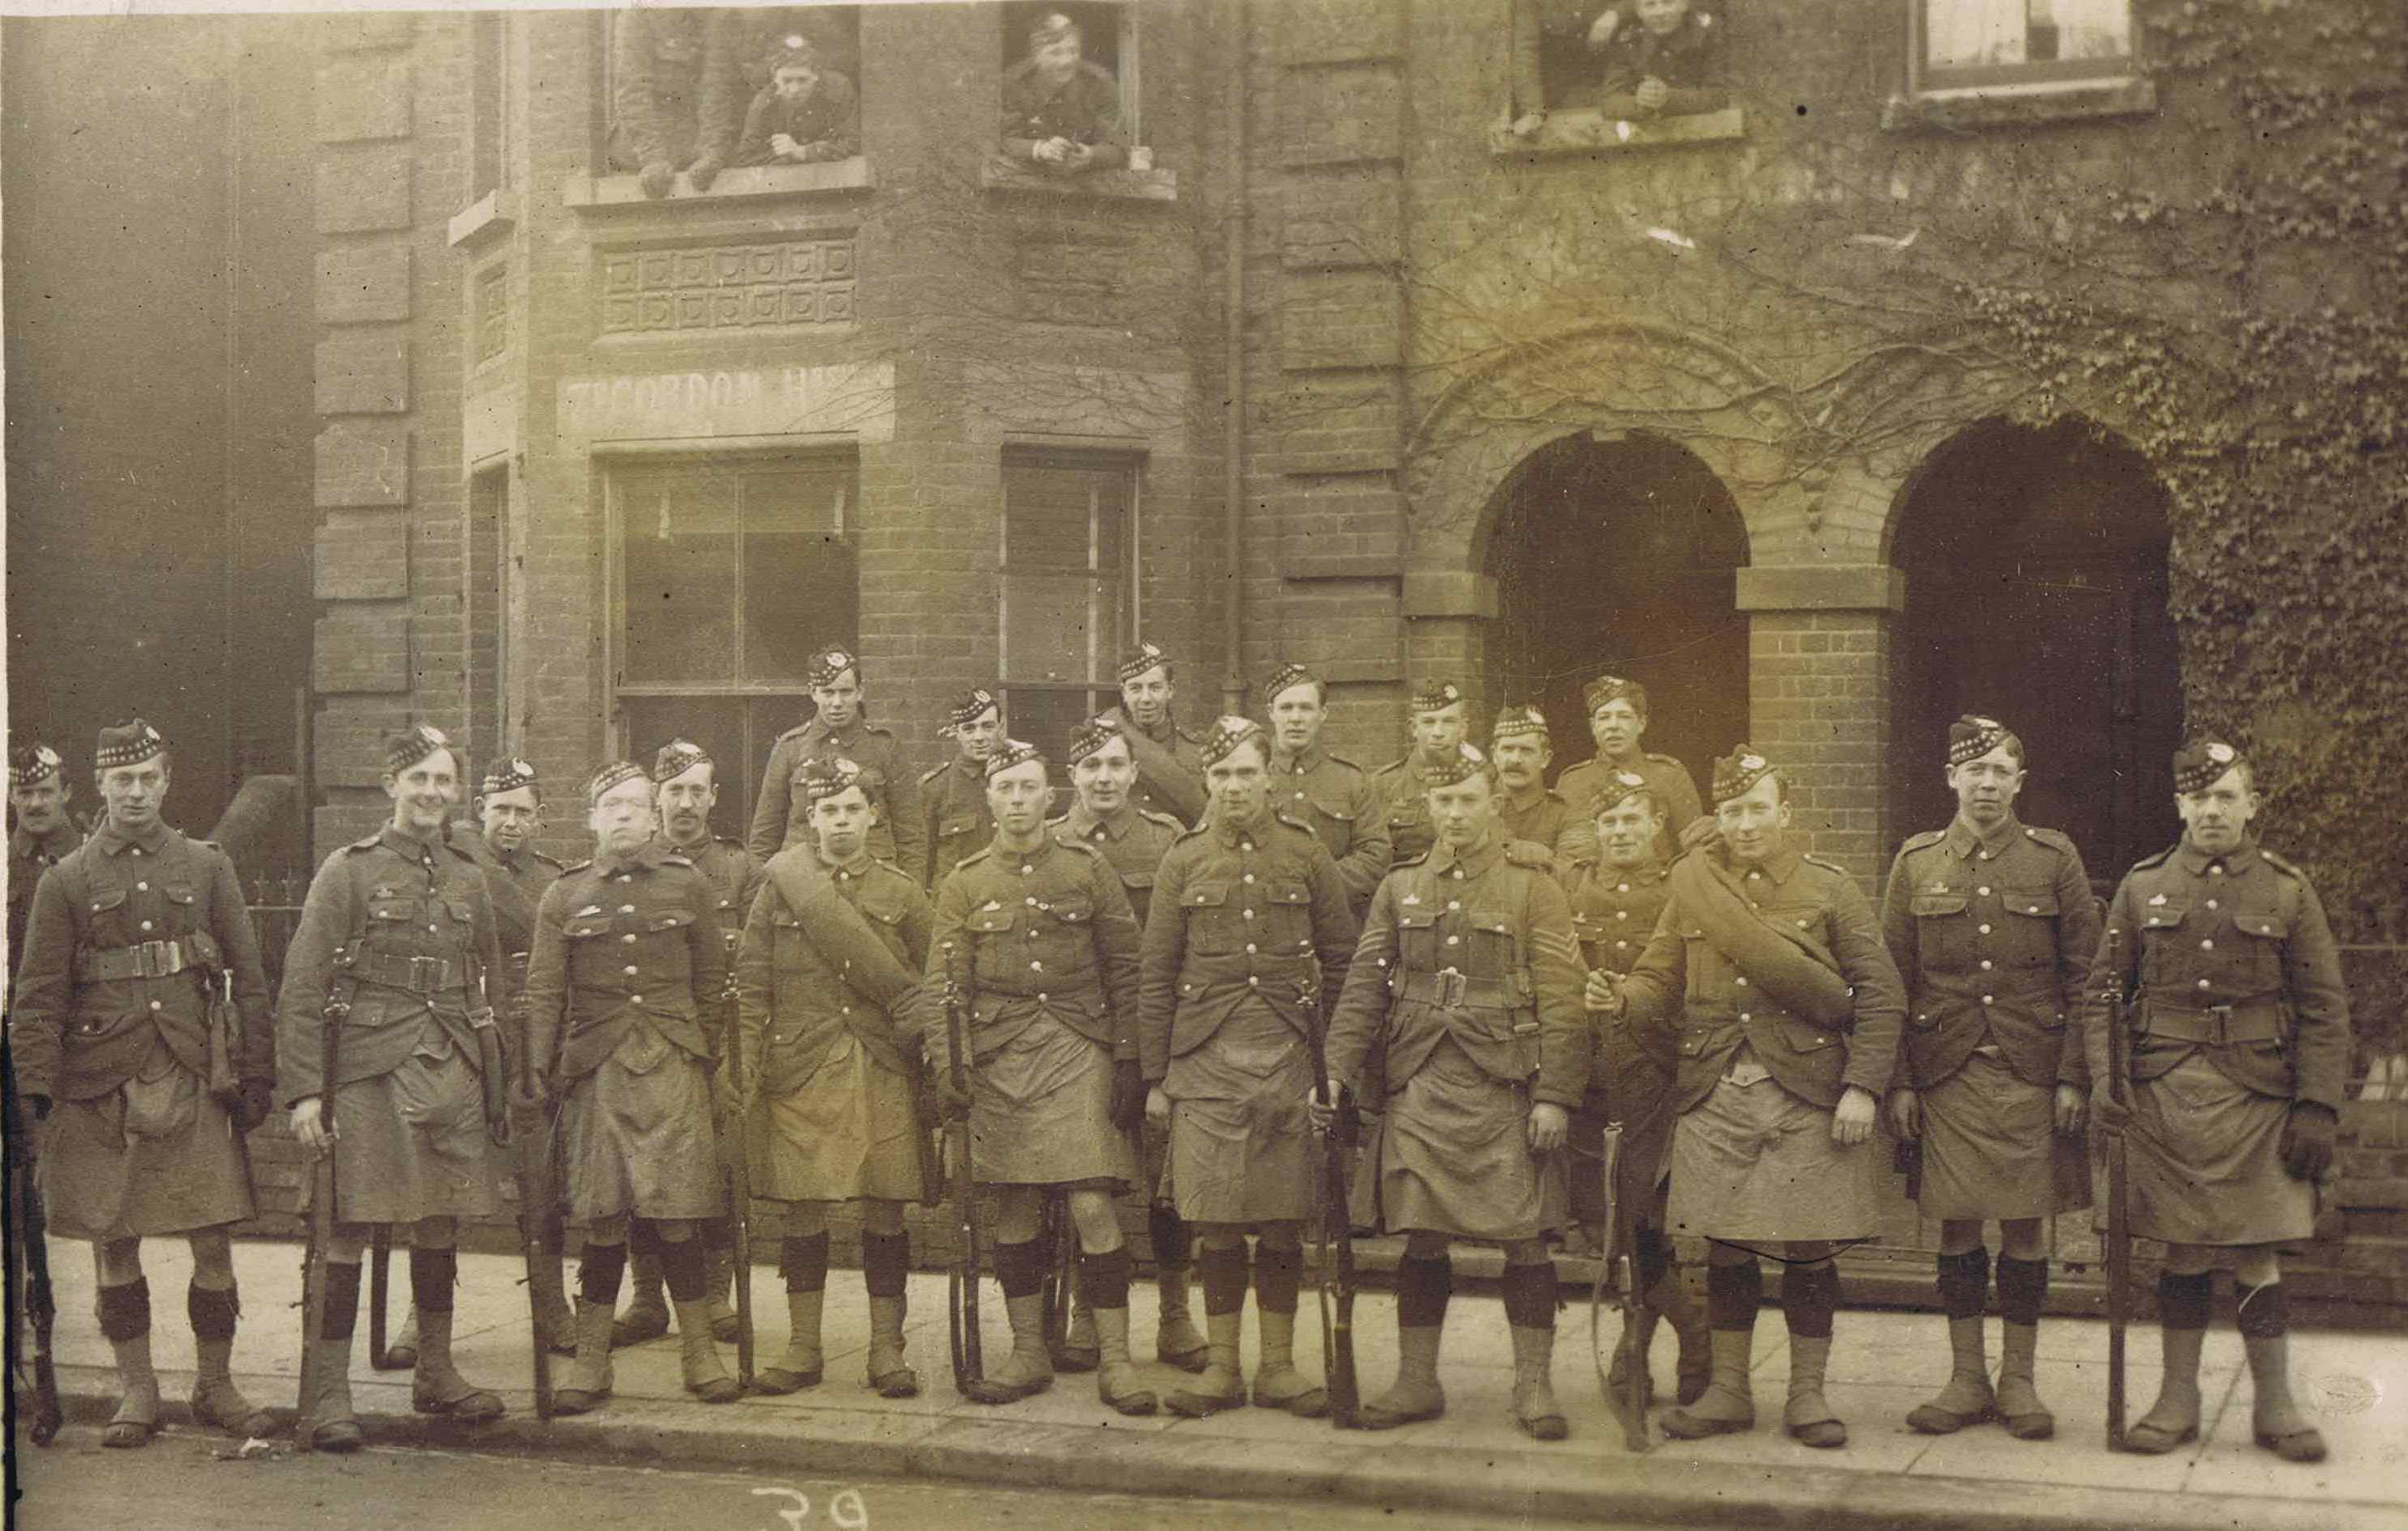 Private Peter Watt is the young lad fourth from the left, front row, in this regimental photograph.